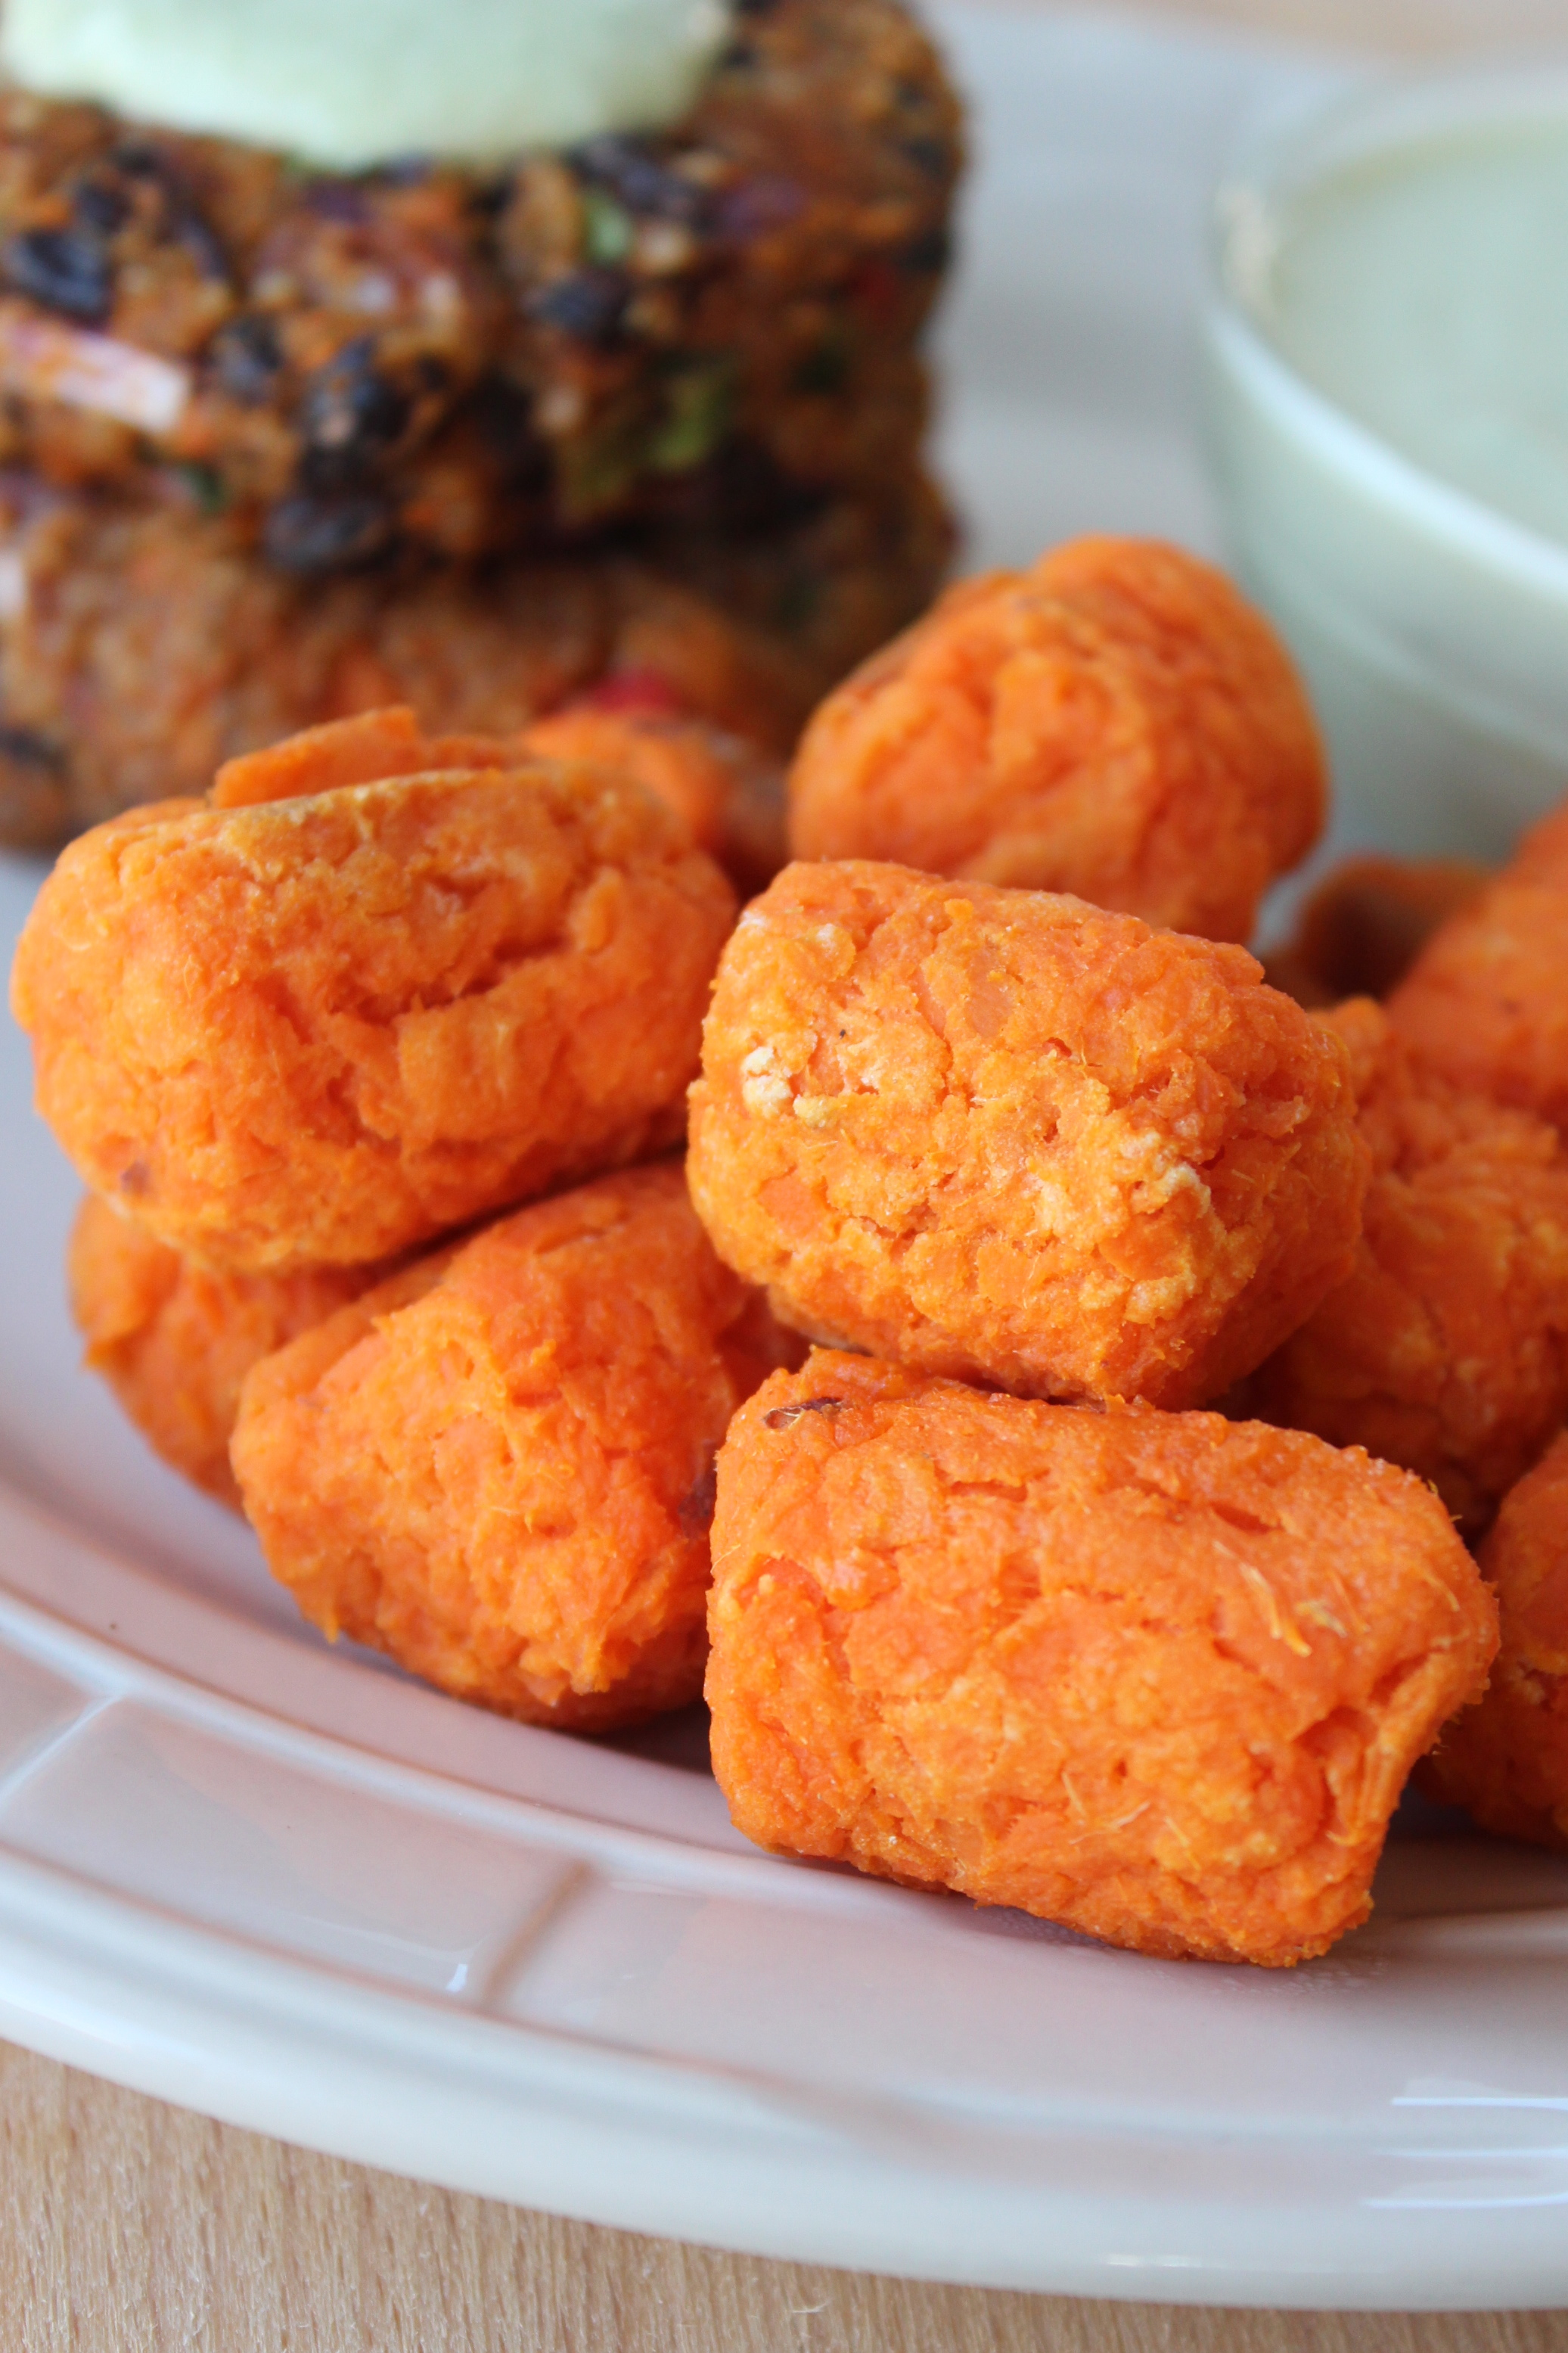 sweet potatoes, kosher salt, brown rice flour, ingredients, recipe, tater tots, homemade, baked, sweet potato tots